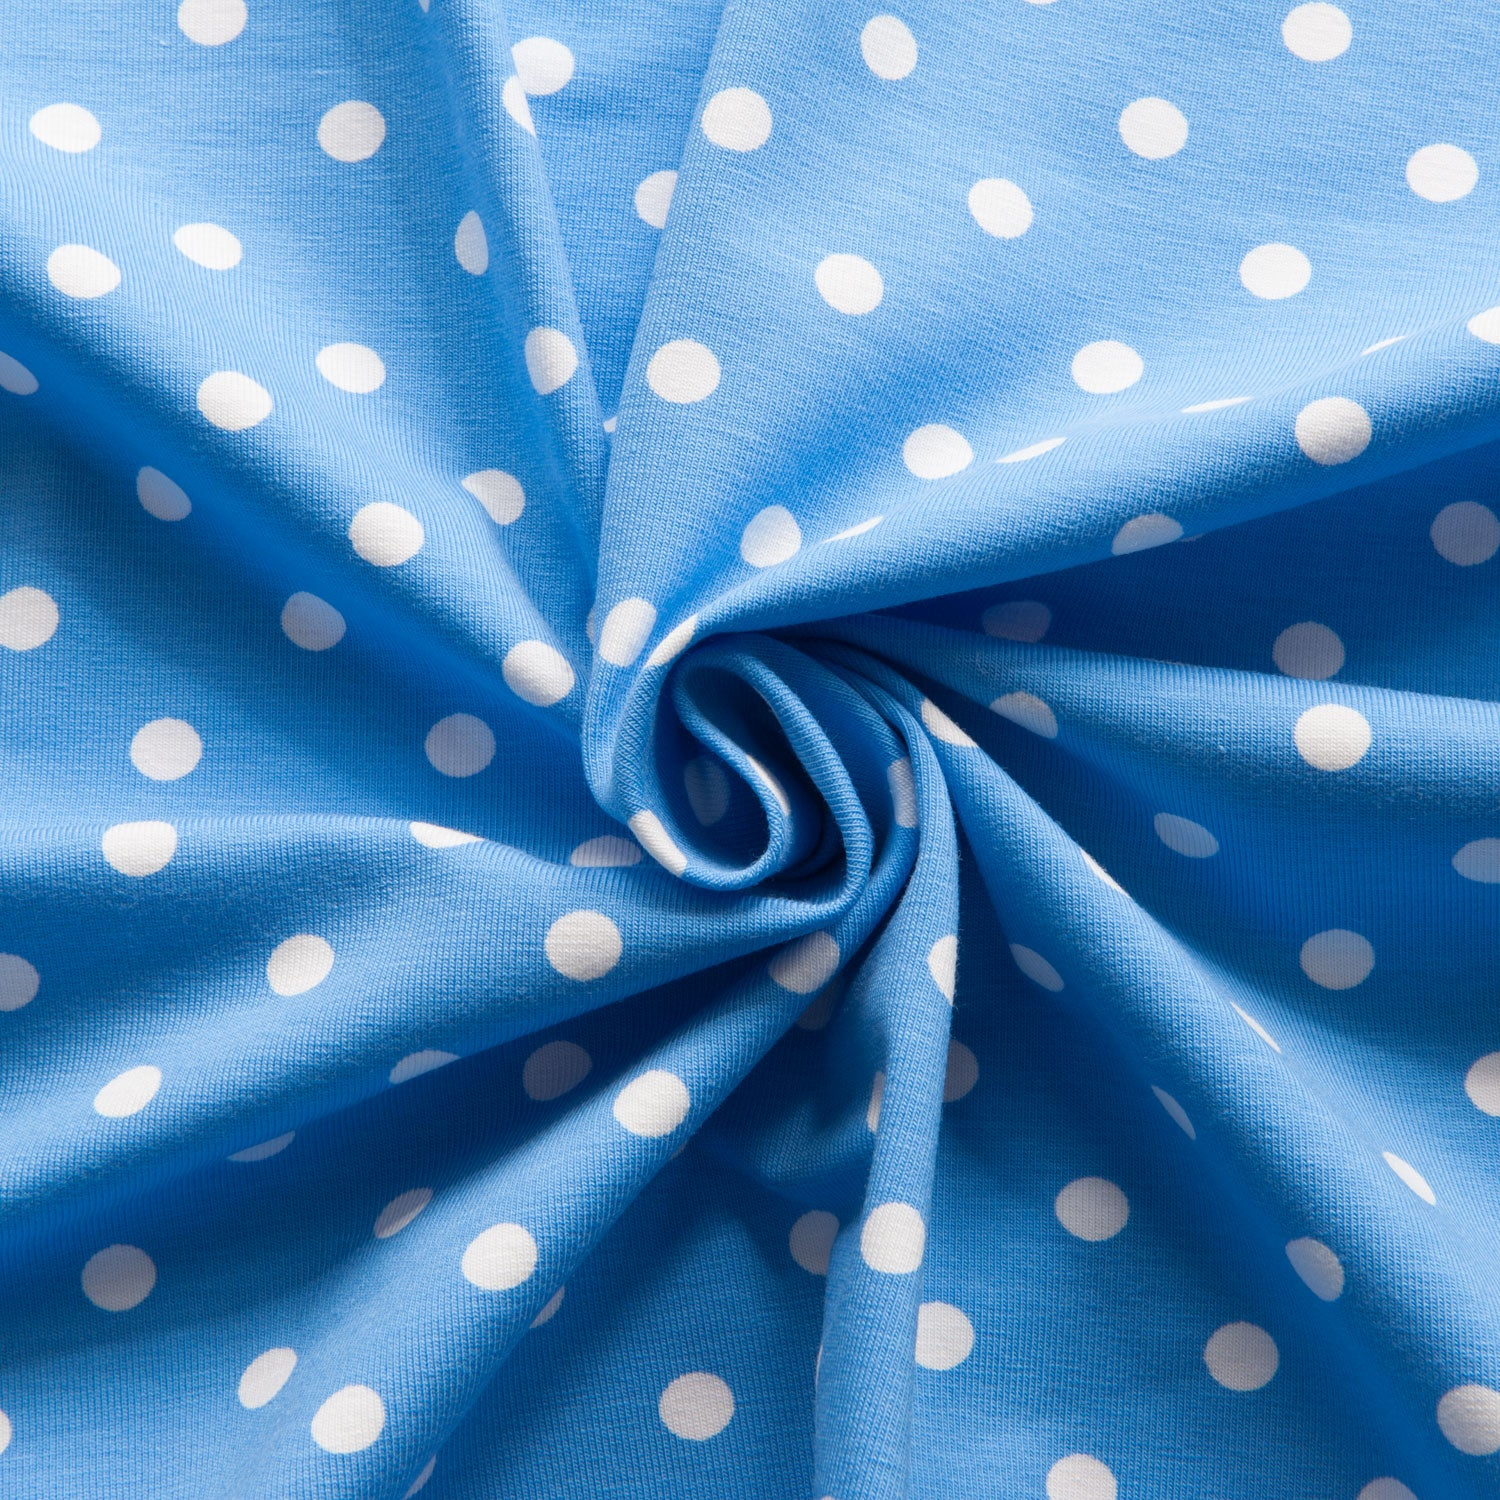 Polka Dot Cotton Jersey in Blue